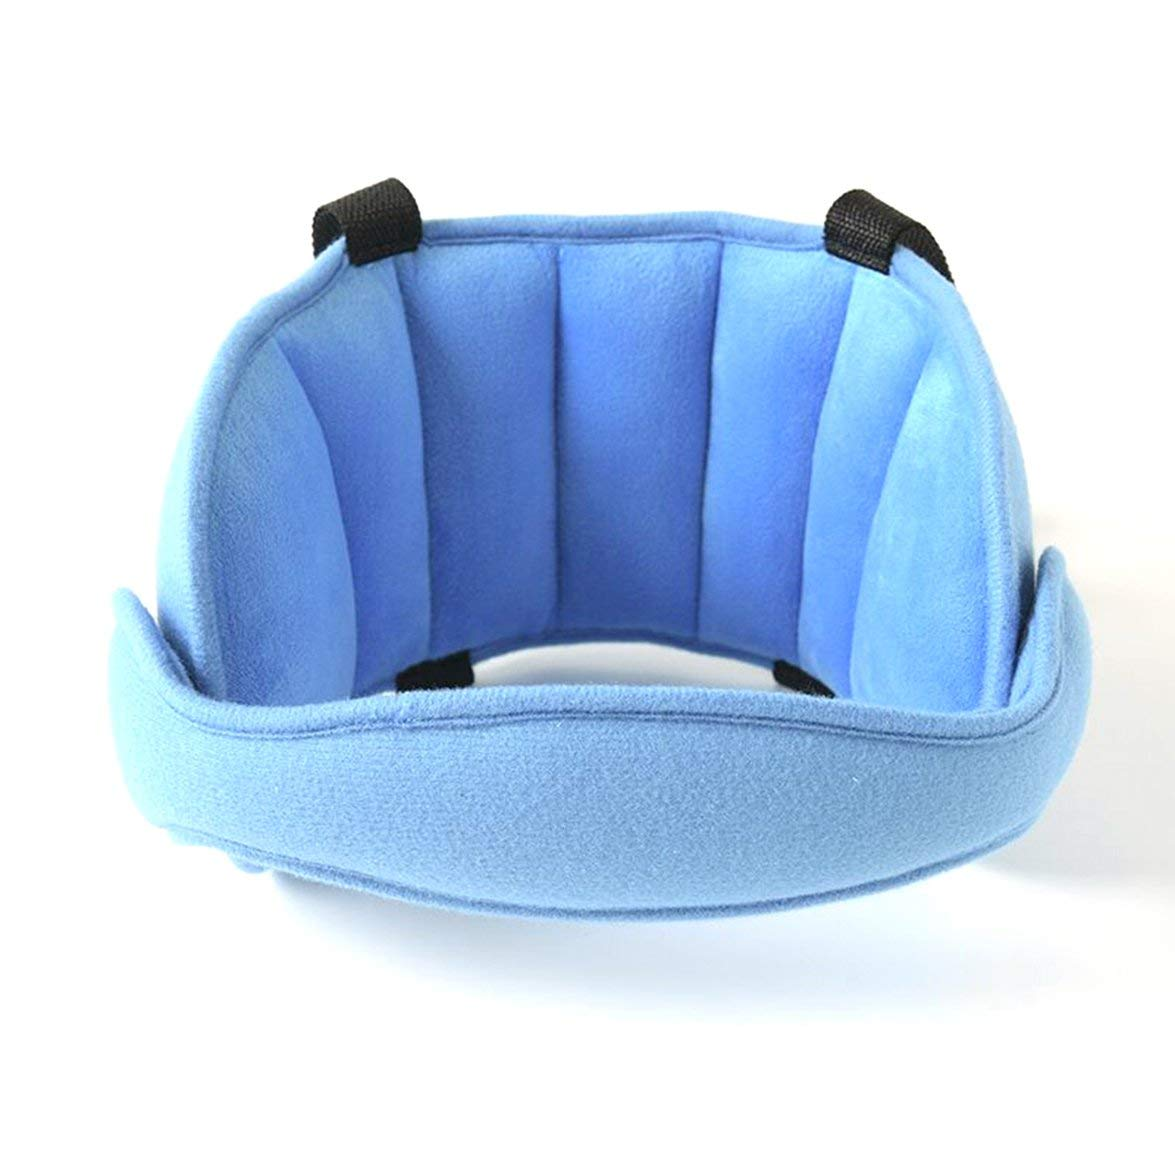 Kongqiabona Comfortable Child Seat Head Supports Baby Head Fixed Sleeping Pillow Kid Car Safety Playpen Headrest Support Pad